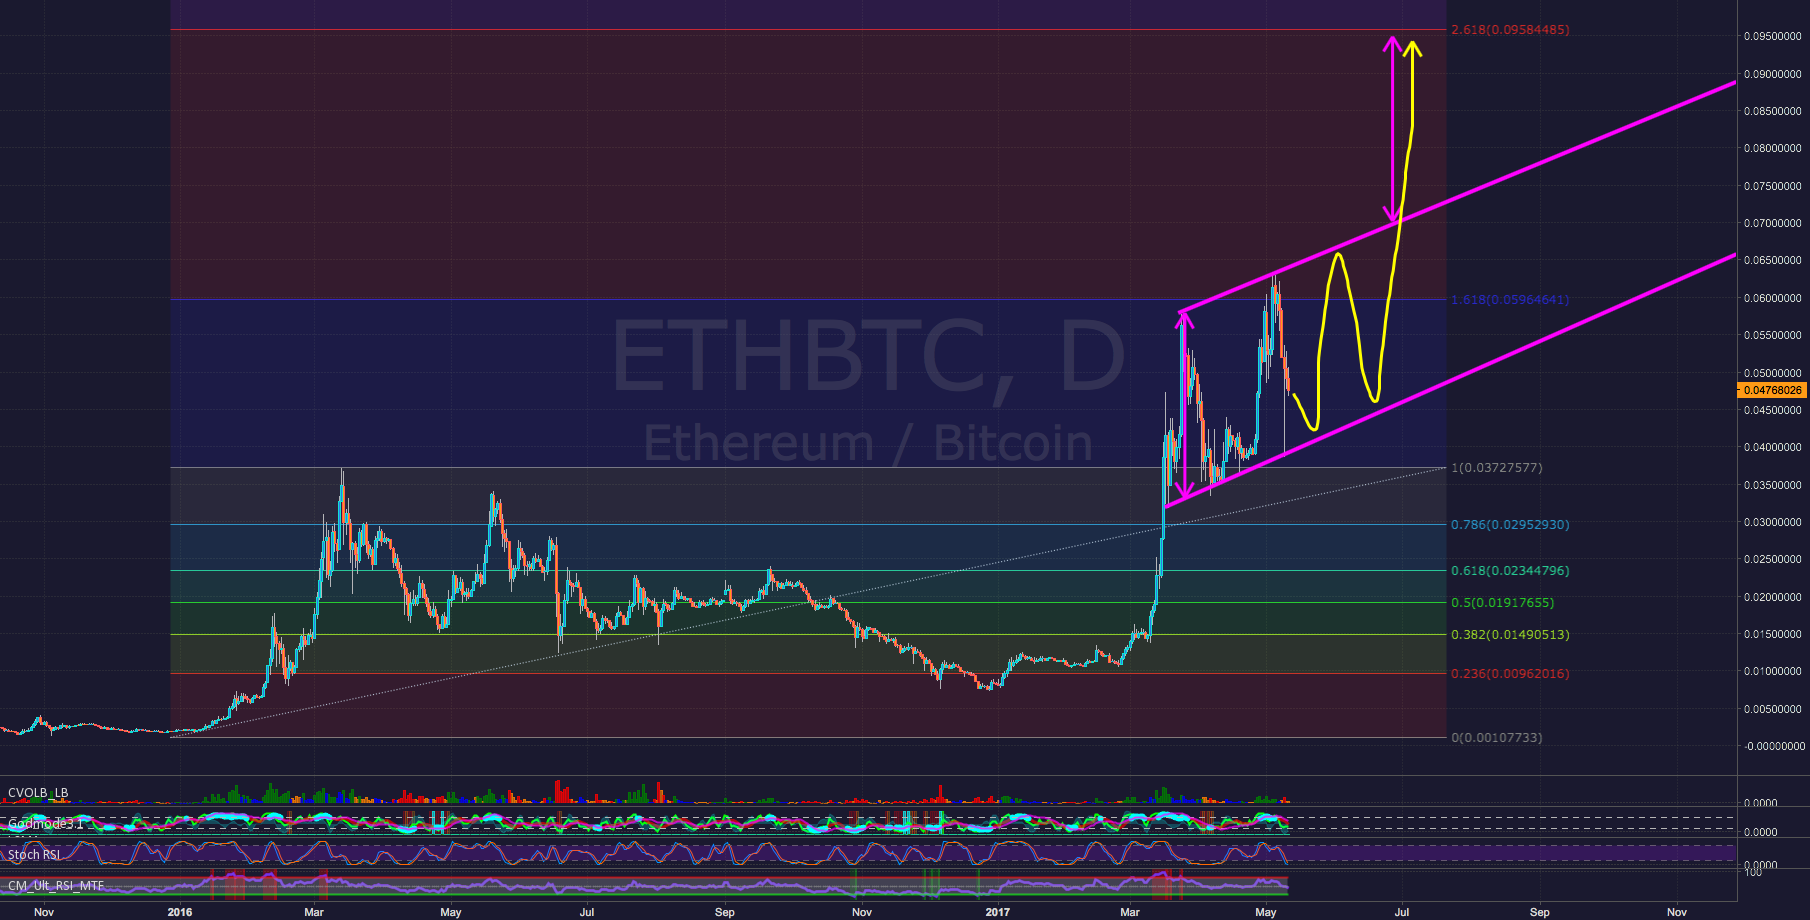 Ethereum ETH - Just a Long-Term Guess